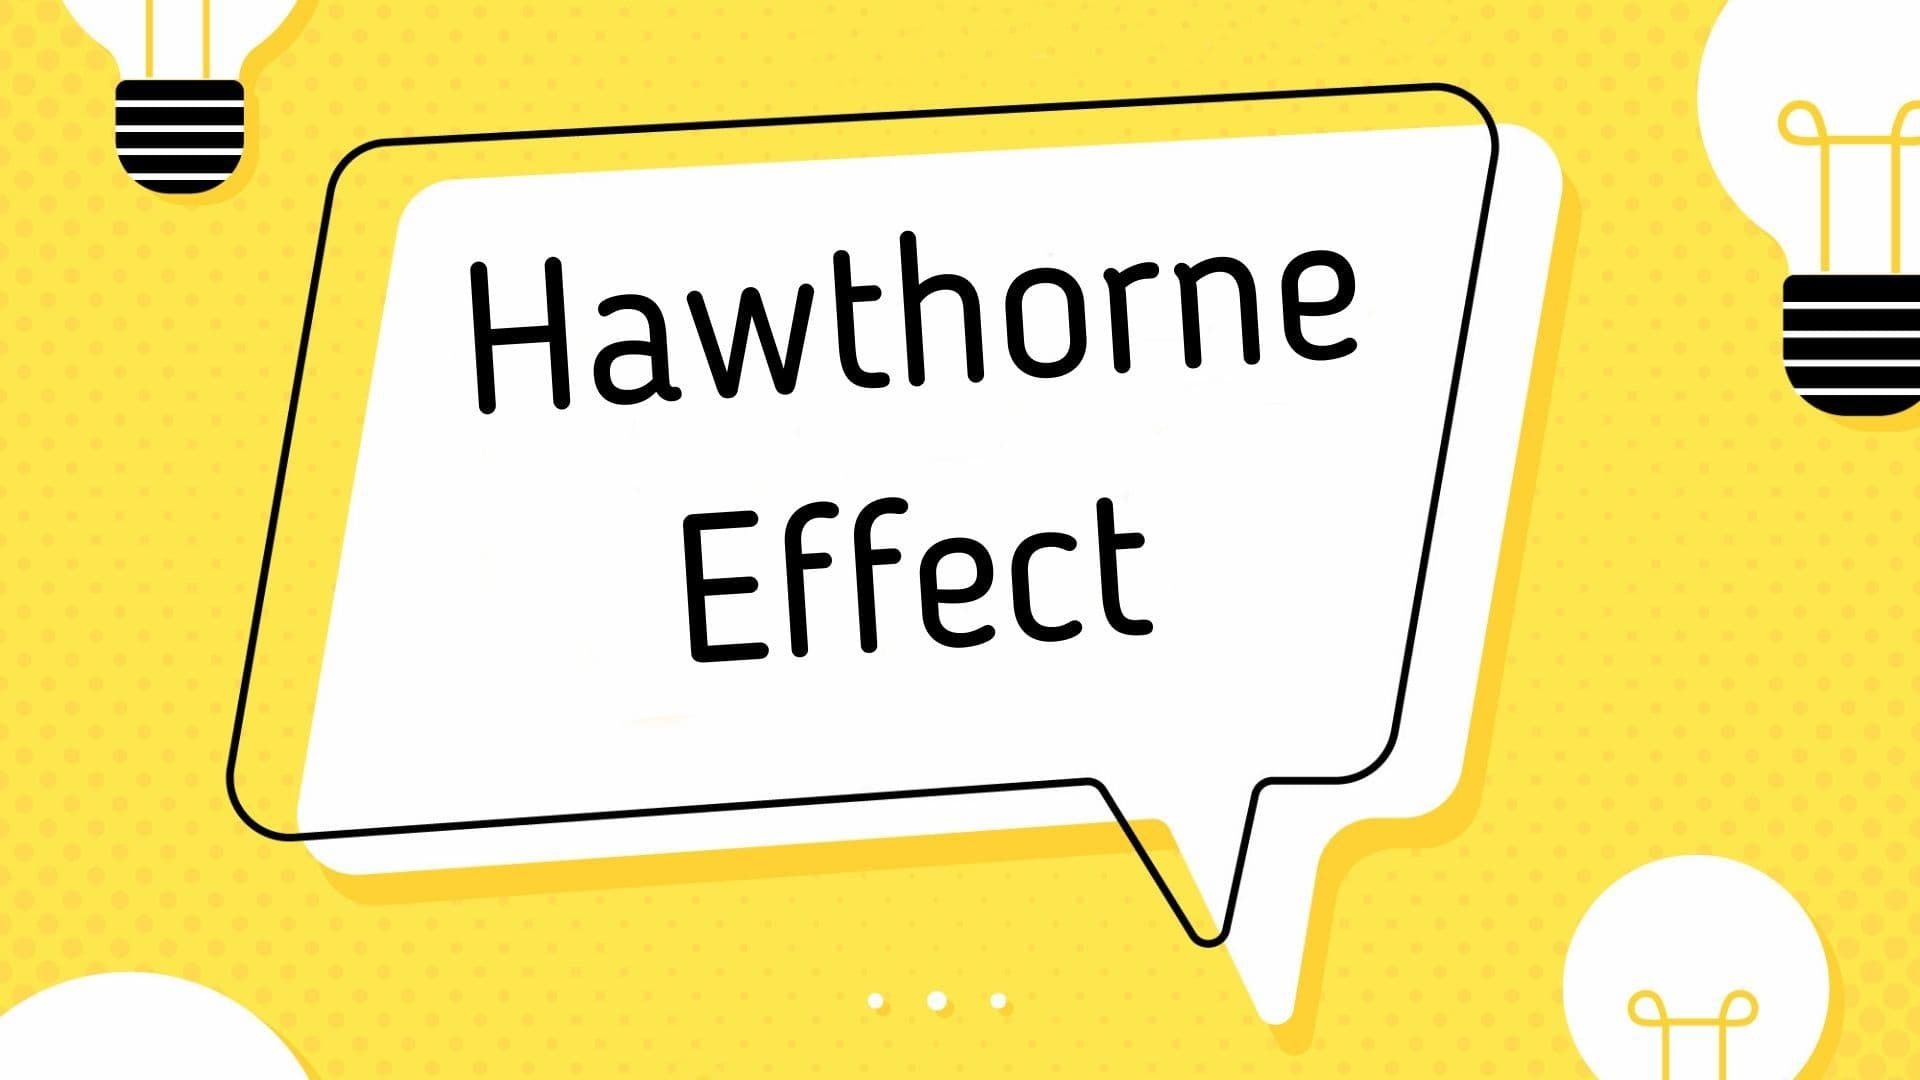 How were the experiments conducted in the Hawthorne Effect